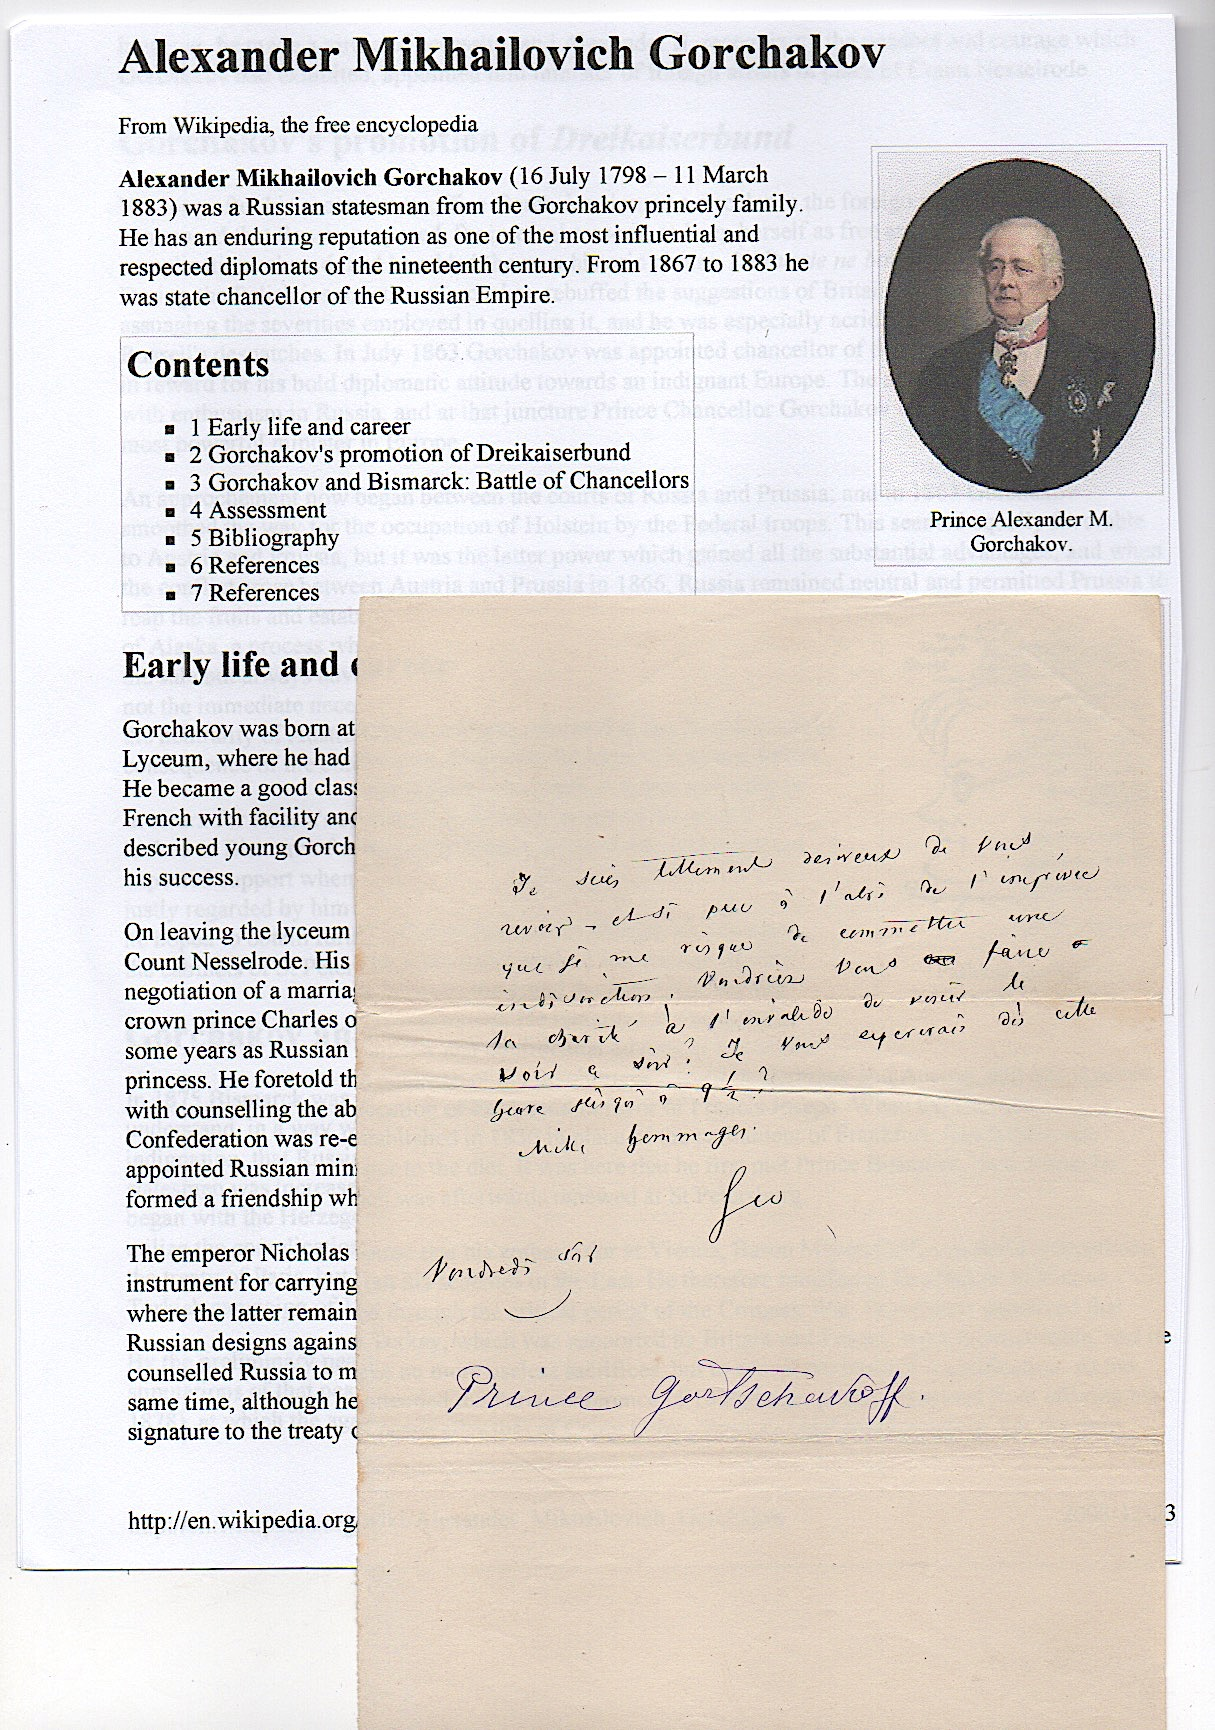 ALS, no date, 1p, 5.5 x 8.5 in. Not sure how top describe his signature  [see scan]. VG........80-120